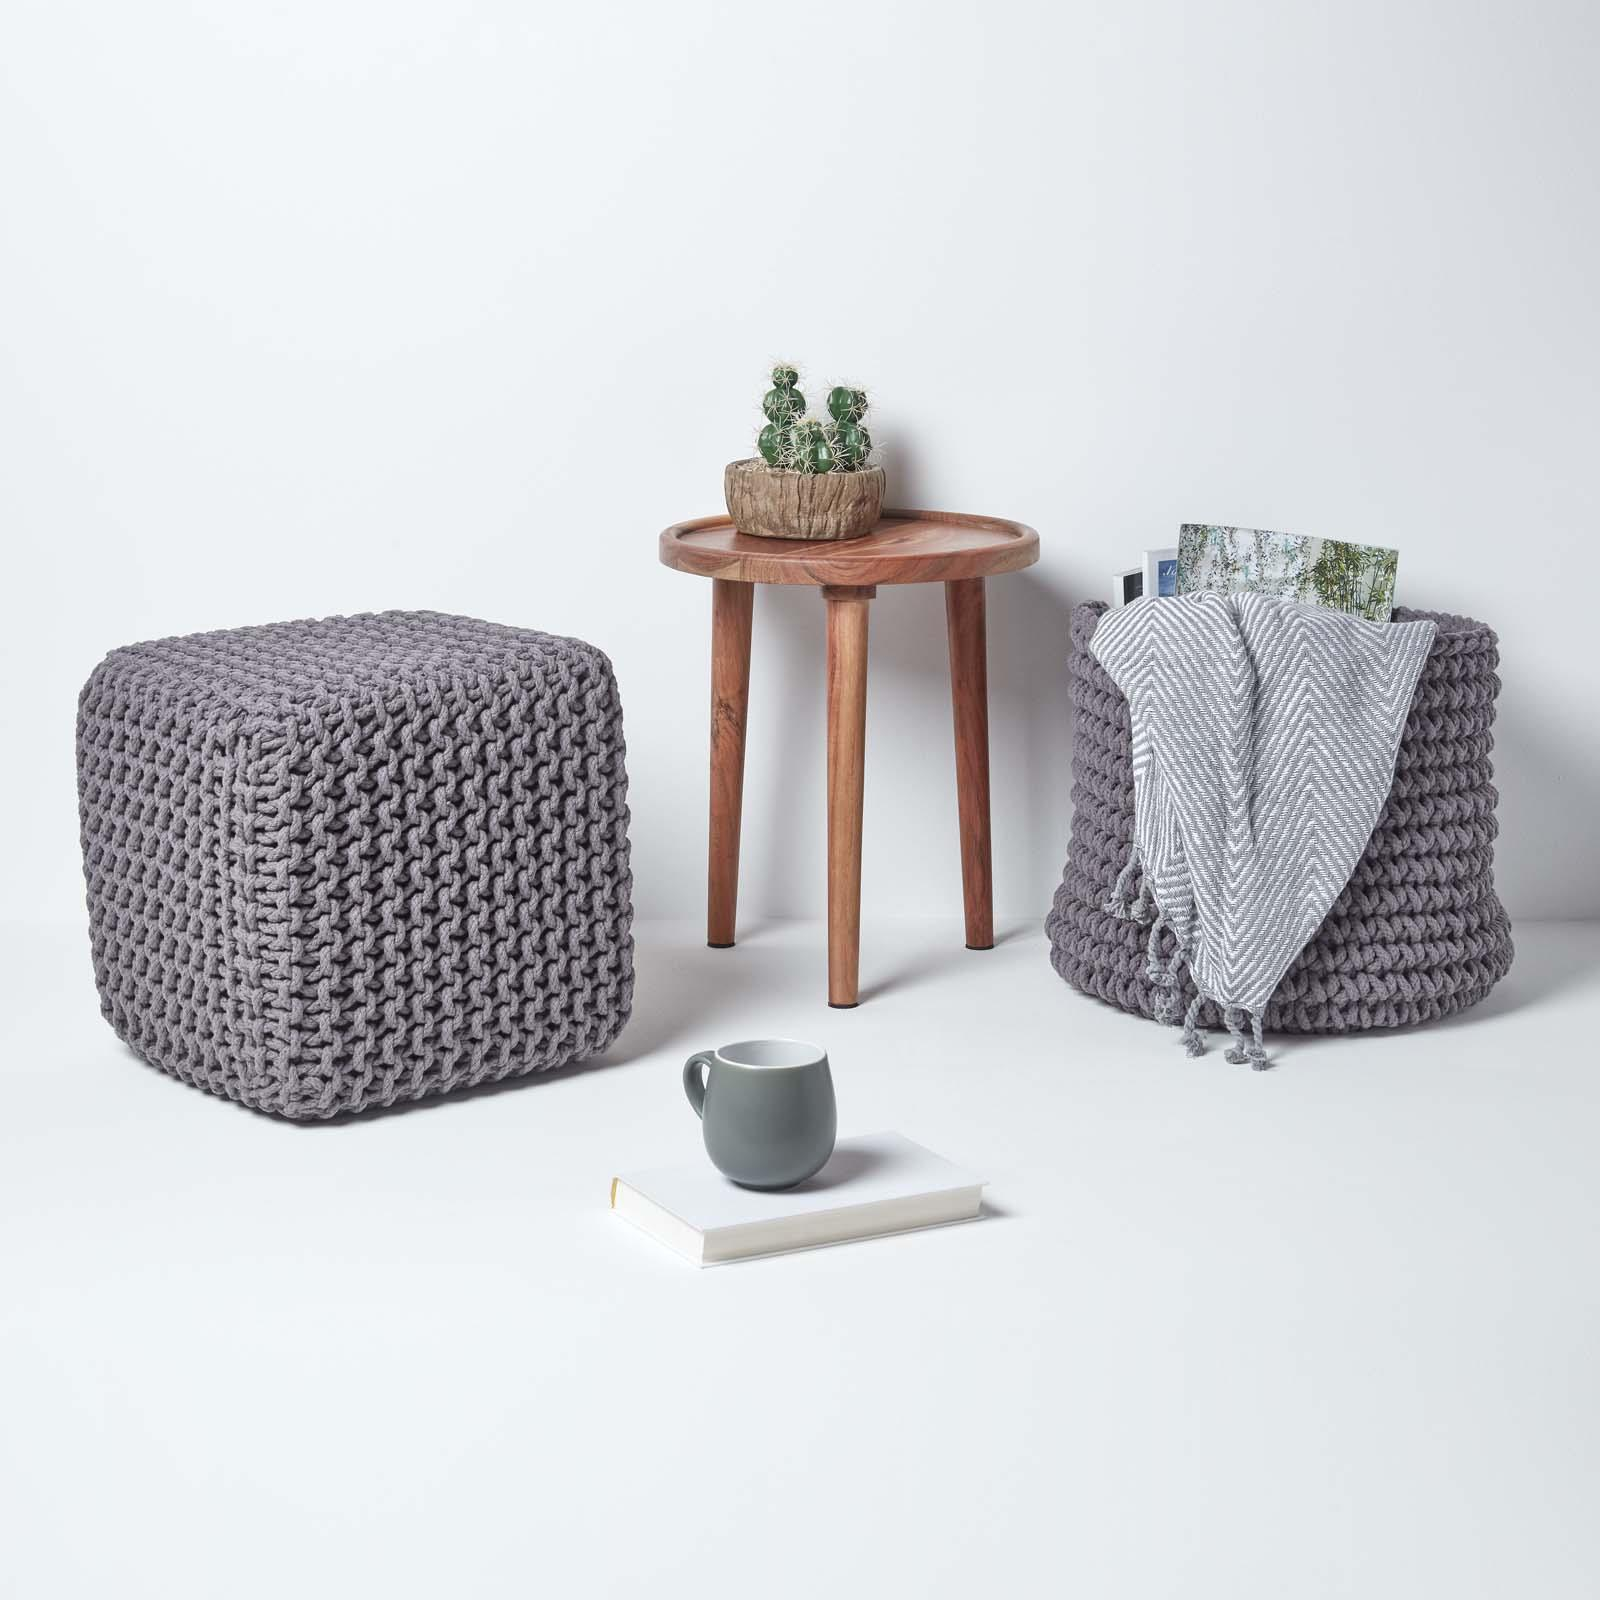 Hand-Knitted-100-Cotton-Pouffes-Round-Sphere-Or-Cube-Square-Chunky-Footstools thumbnail 56